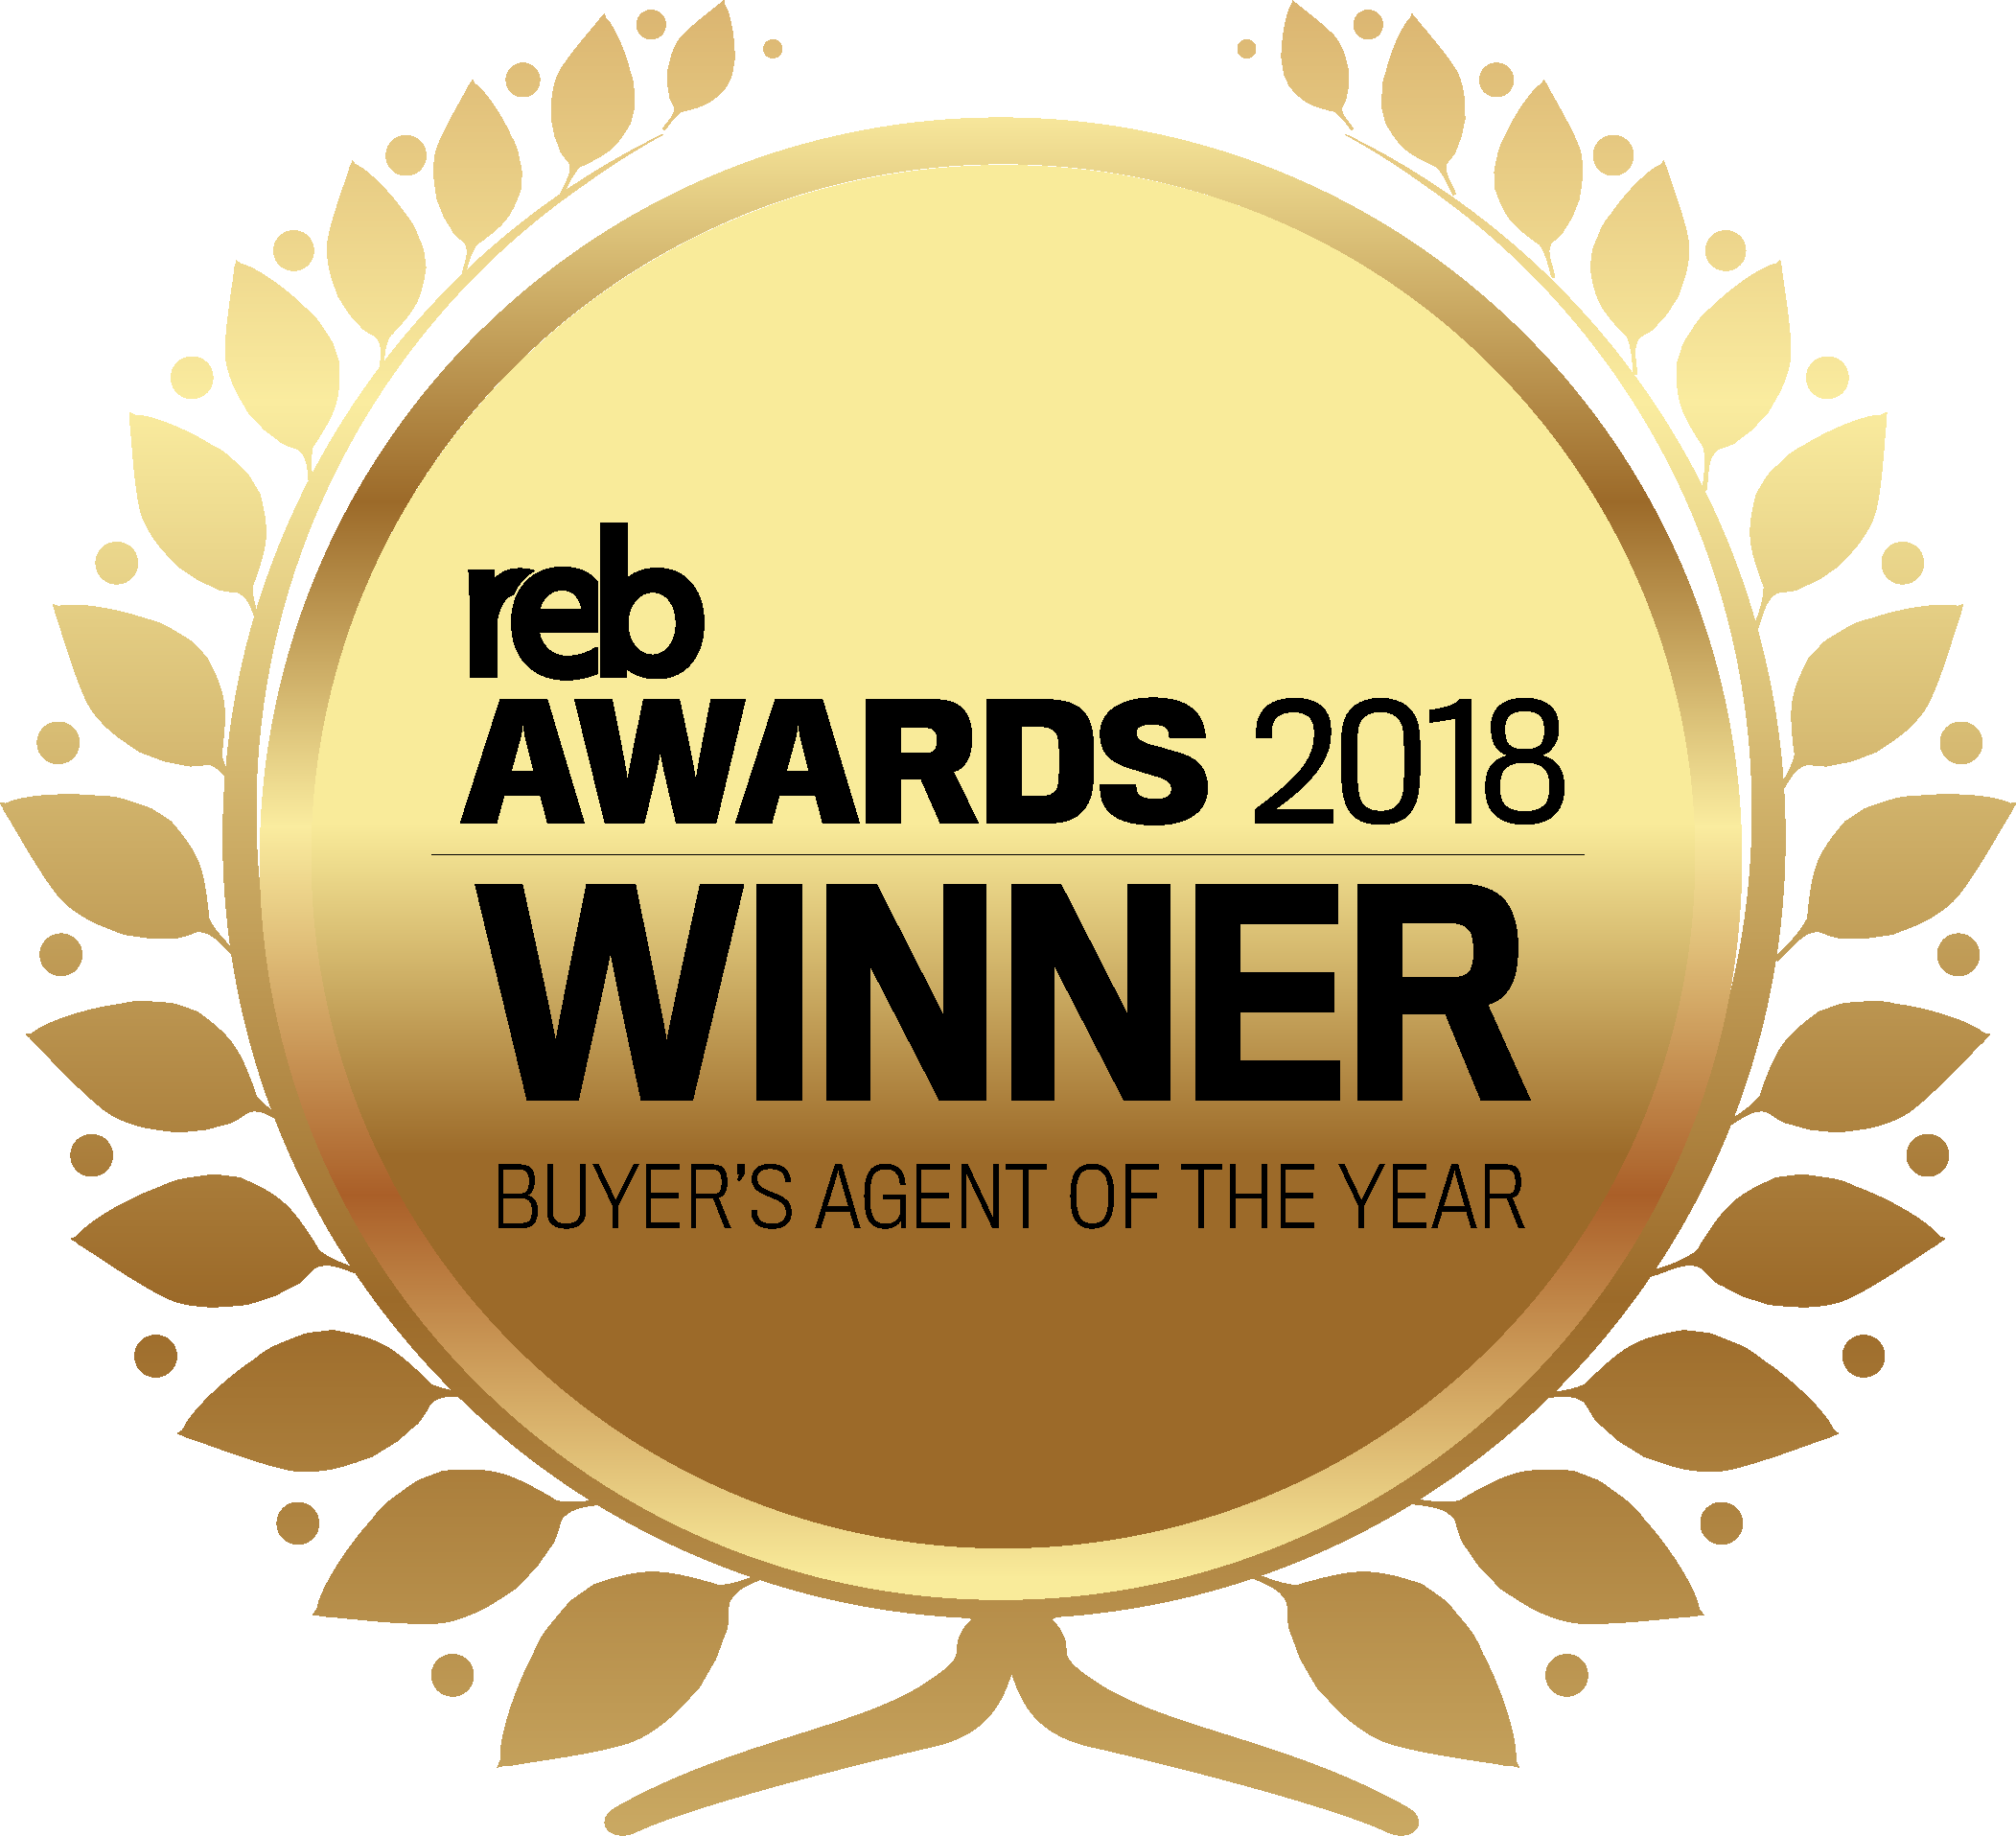 Buyer's Agent of the Year